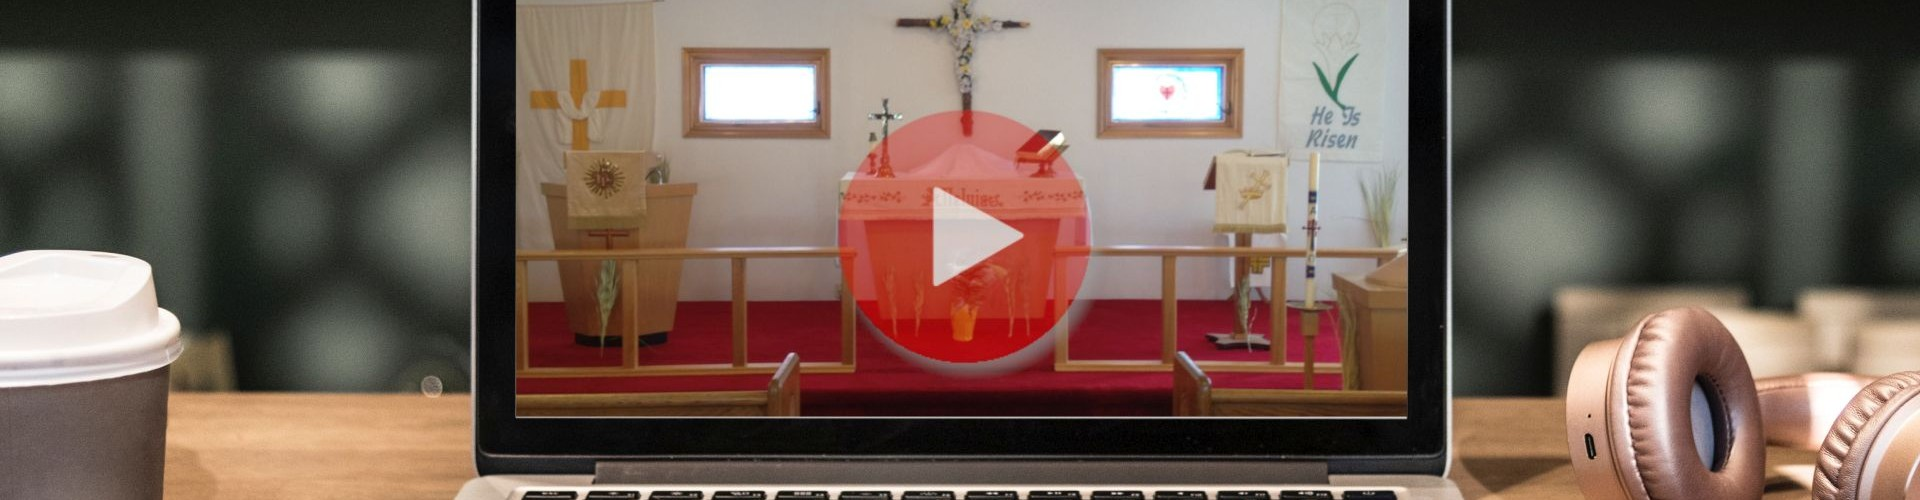 Good Shepherd Live Streaming